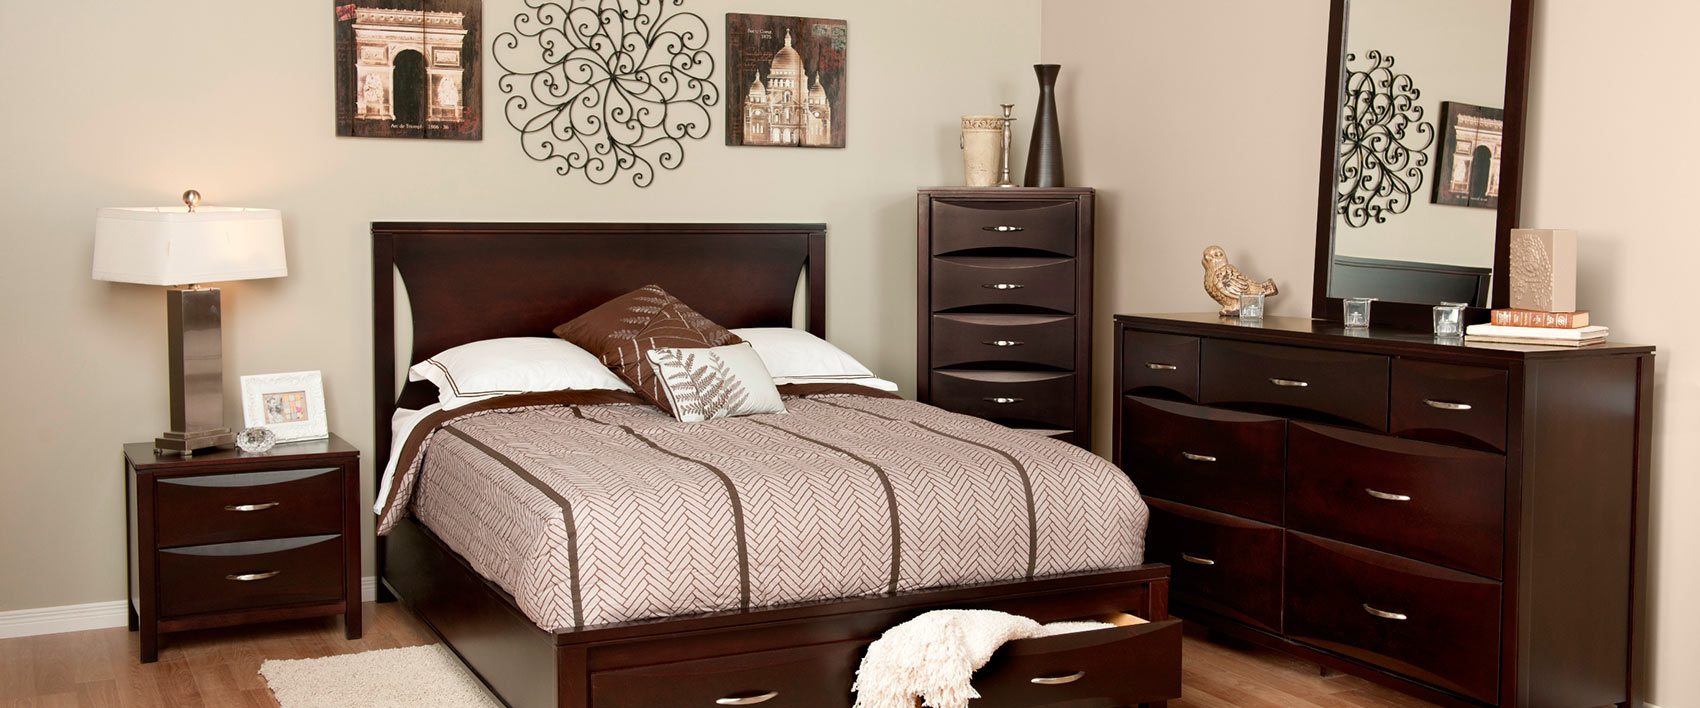 Bedroom Furniture Made To Fit Your Lifestyle